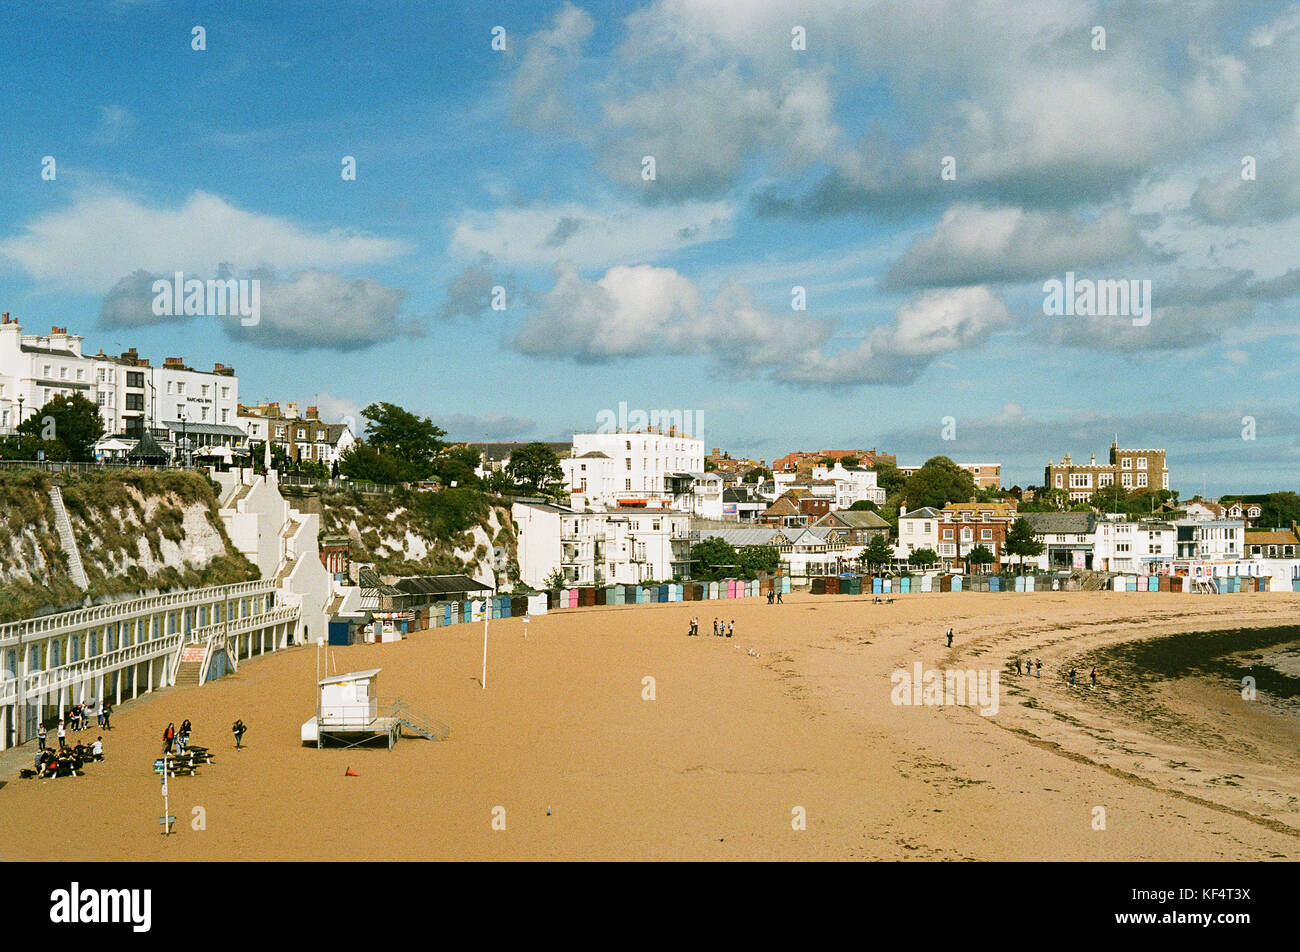 Seafront buildings overlooking the harbour at Broadstairs, Isle of Thanet, on the East Kent coast, UK Stock Photo